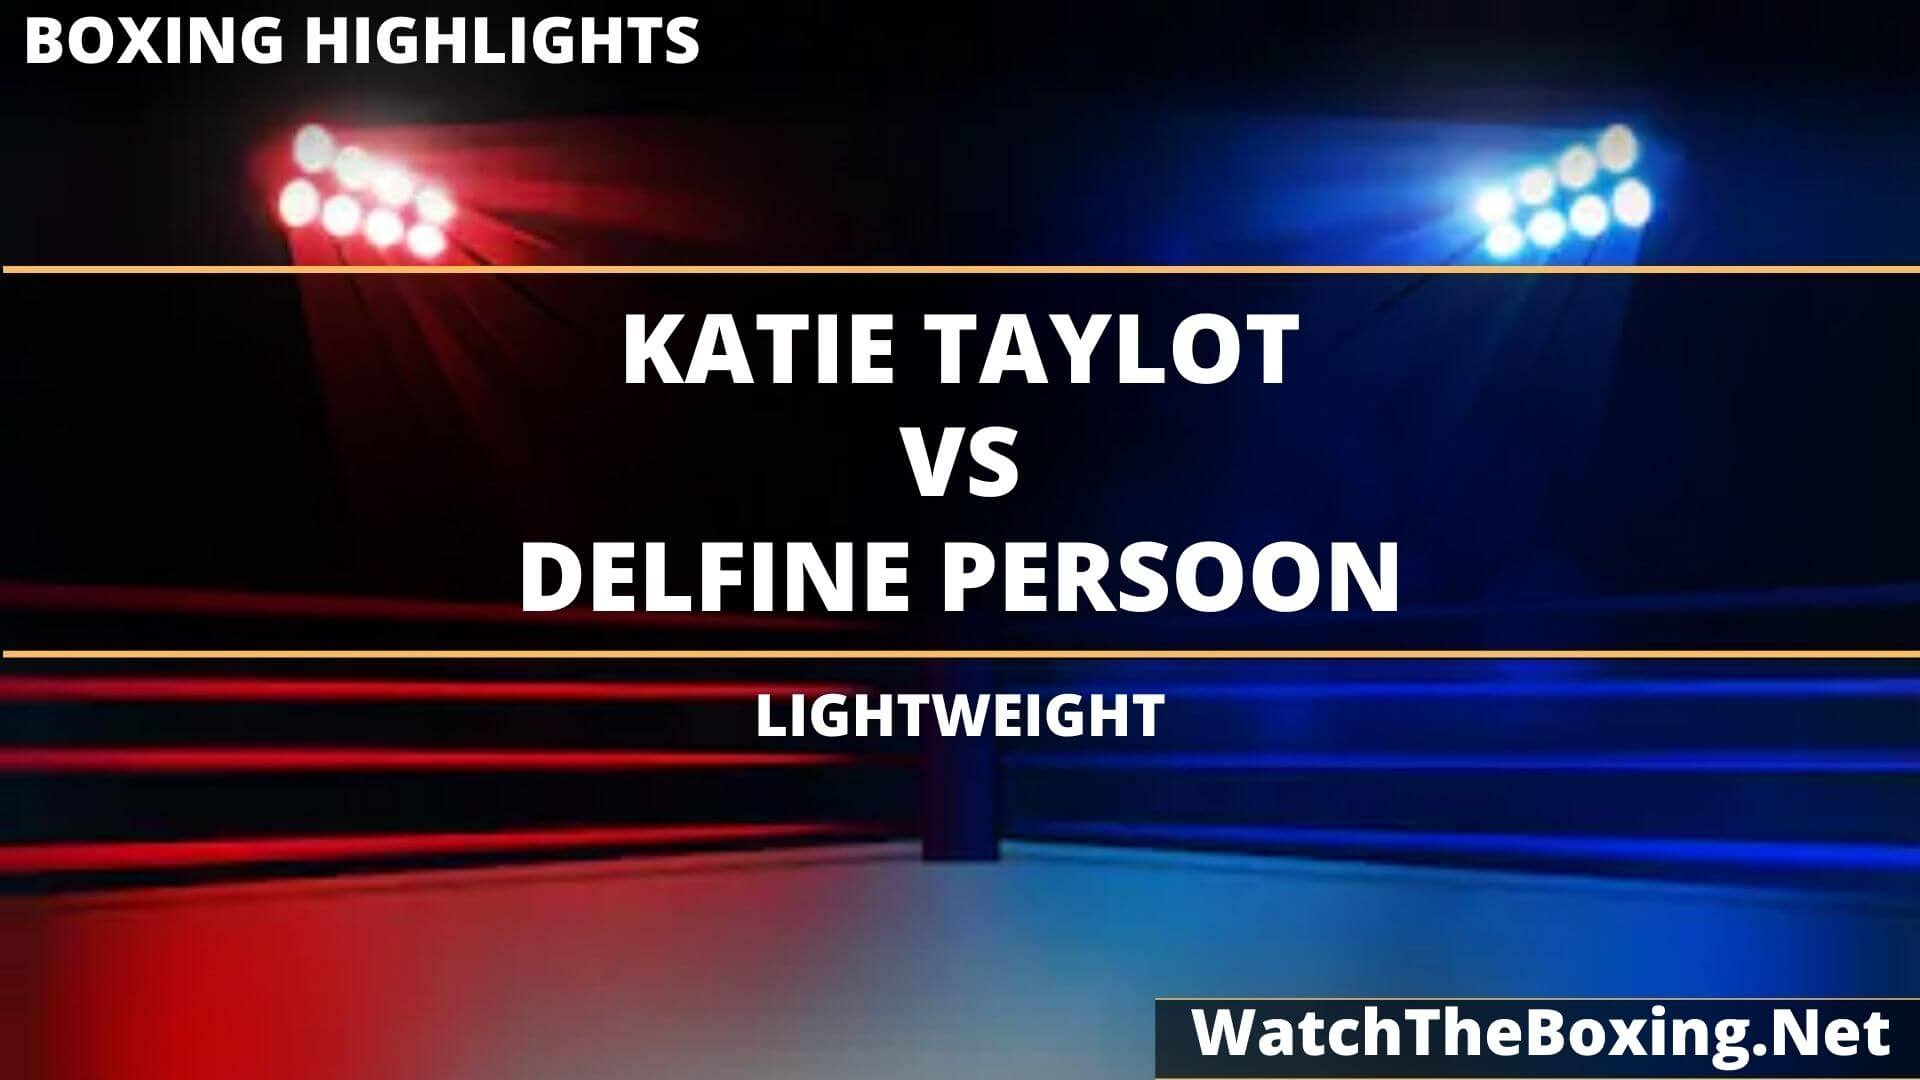 Katie Taylor Vs Delfine Persoon Highlights 2020 Lightweight